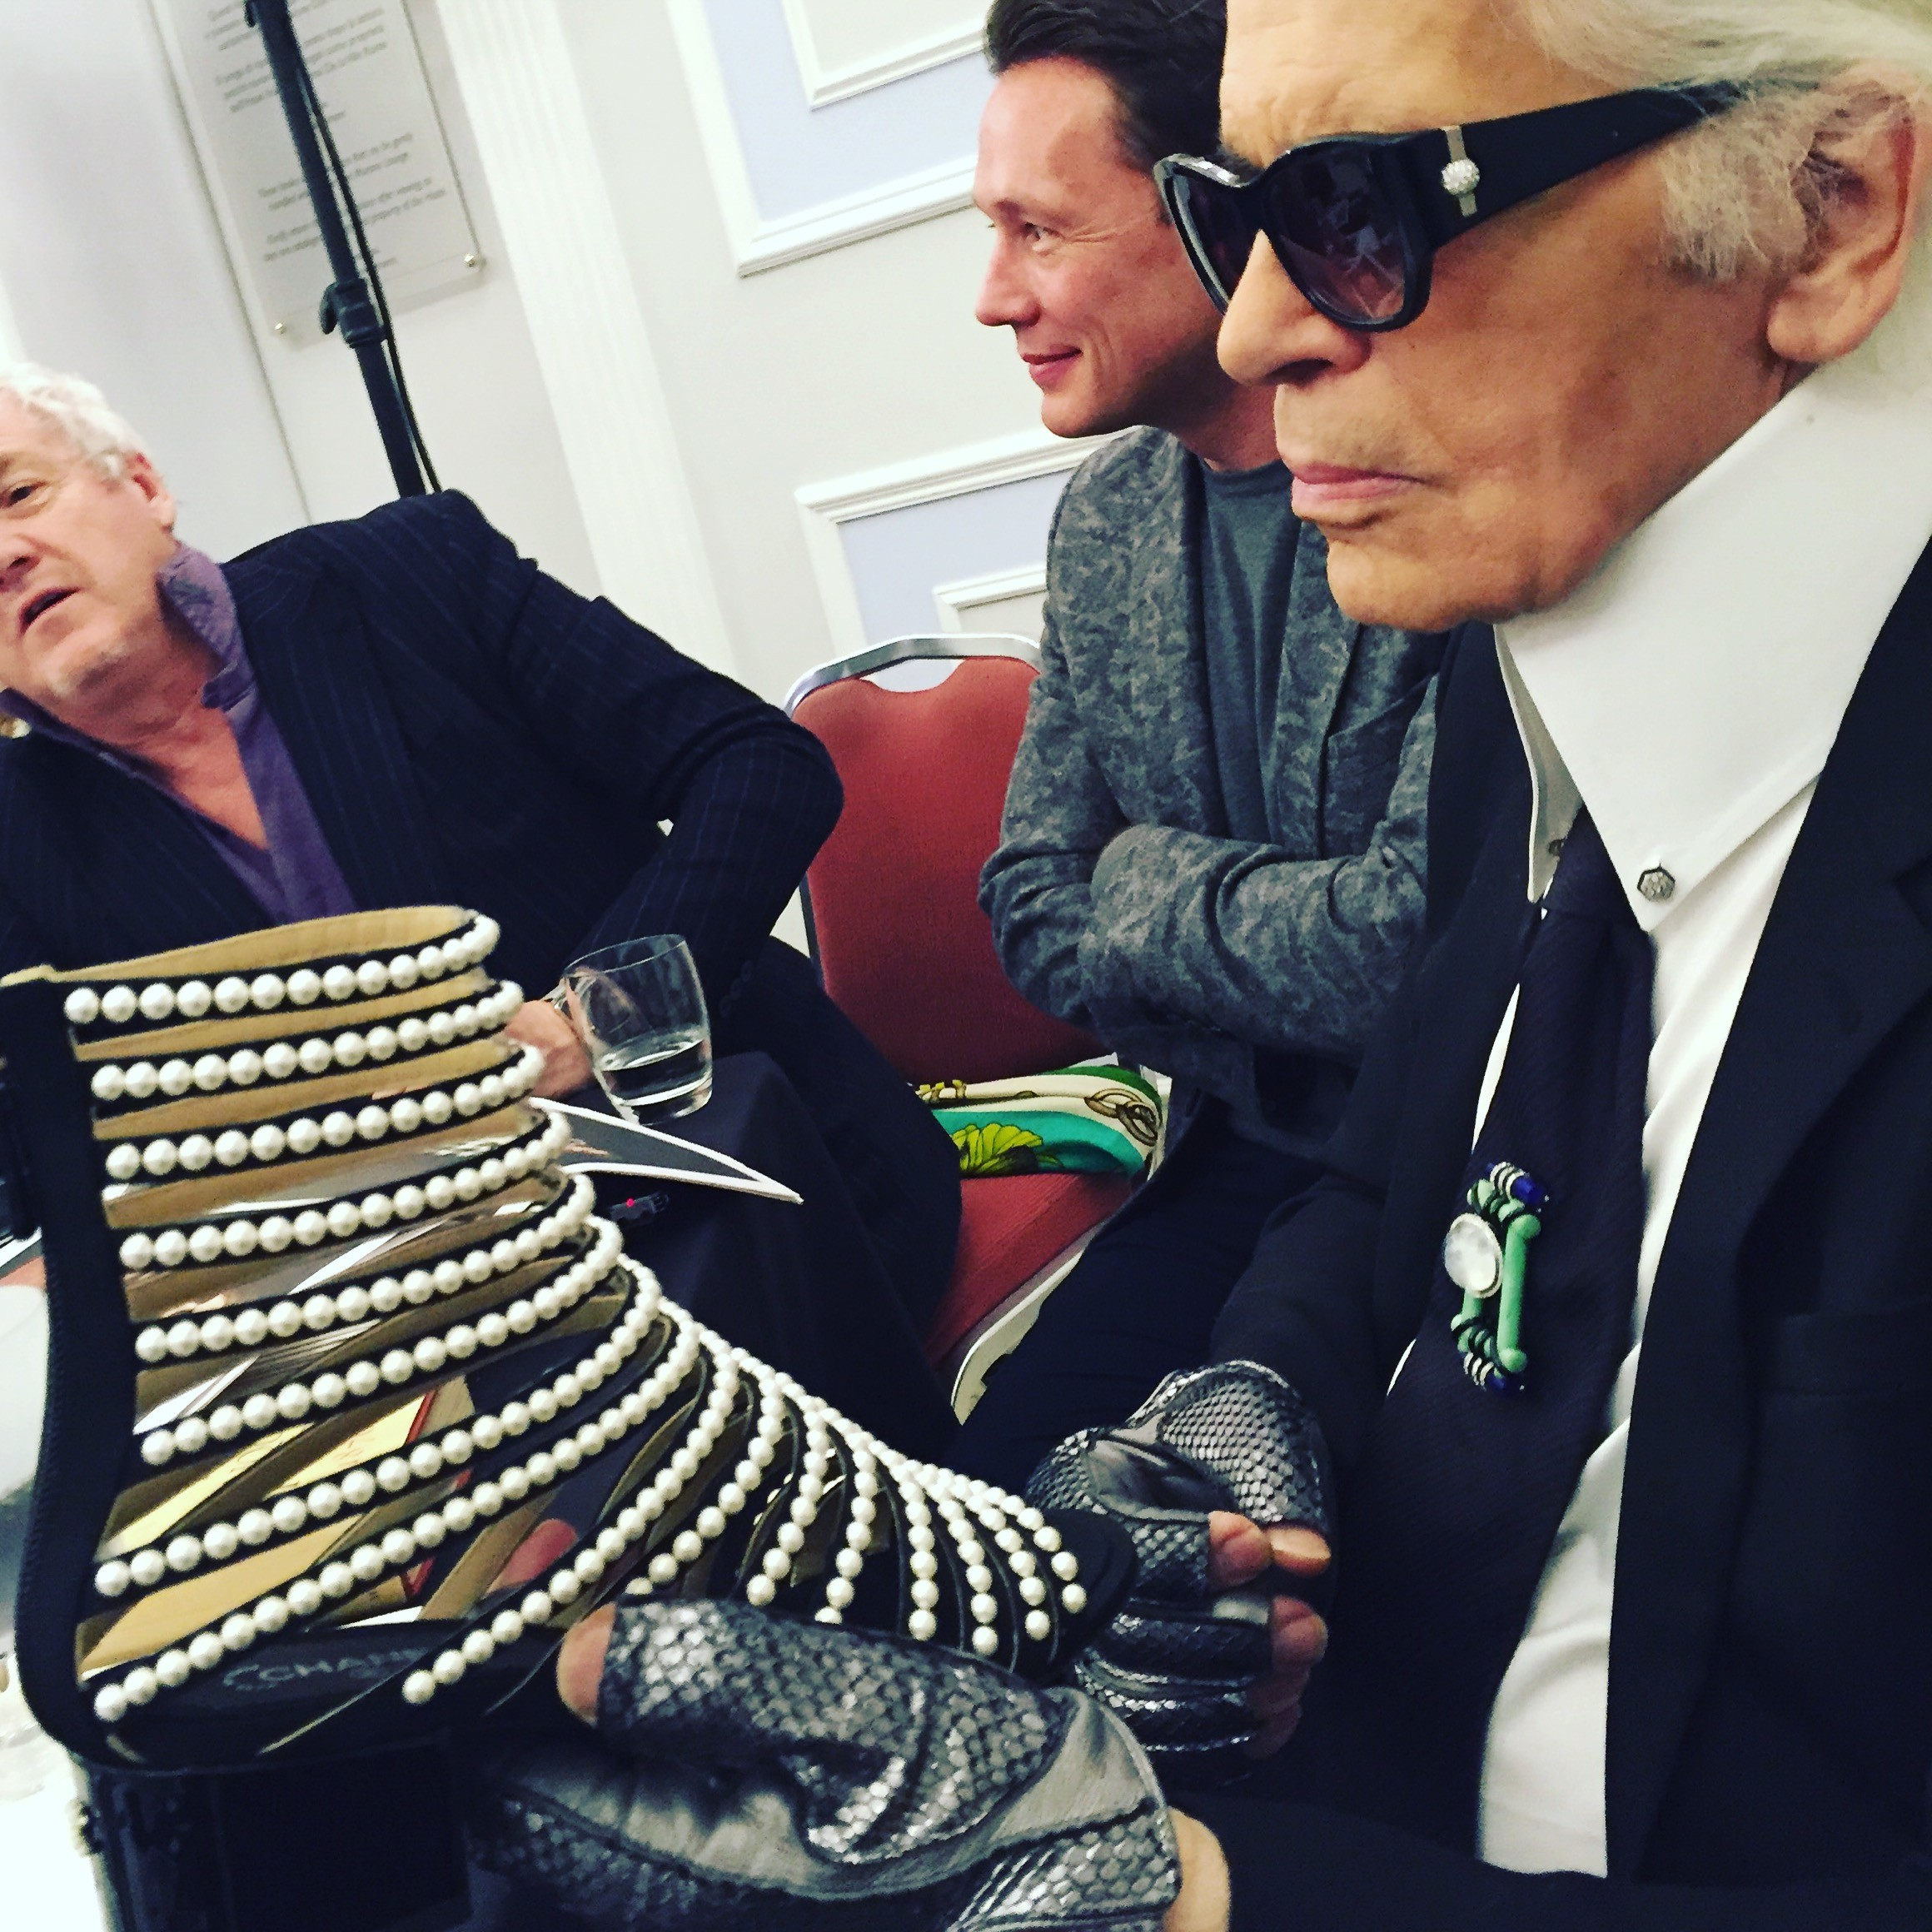 In Karl's gloved hand a pearl of a shoe with ribs of pearls on a sandal boot (Foto: SuzyMenkesVogue)